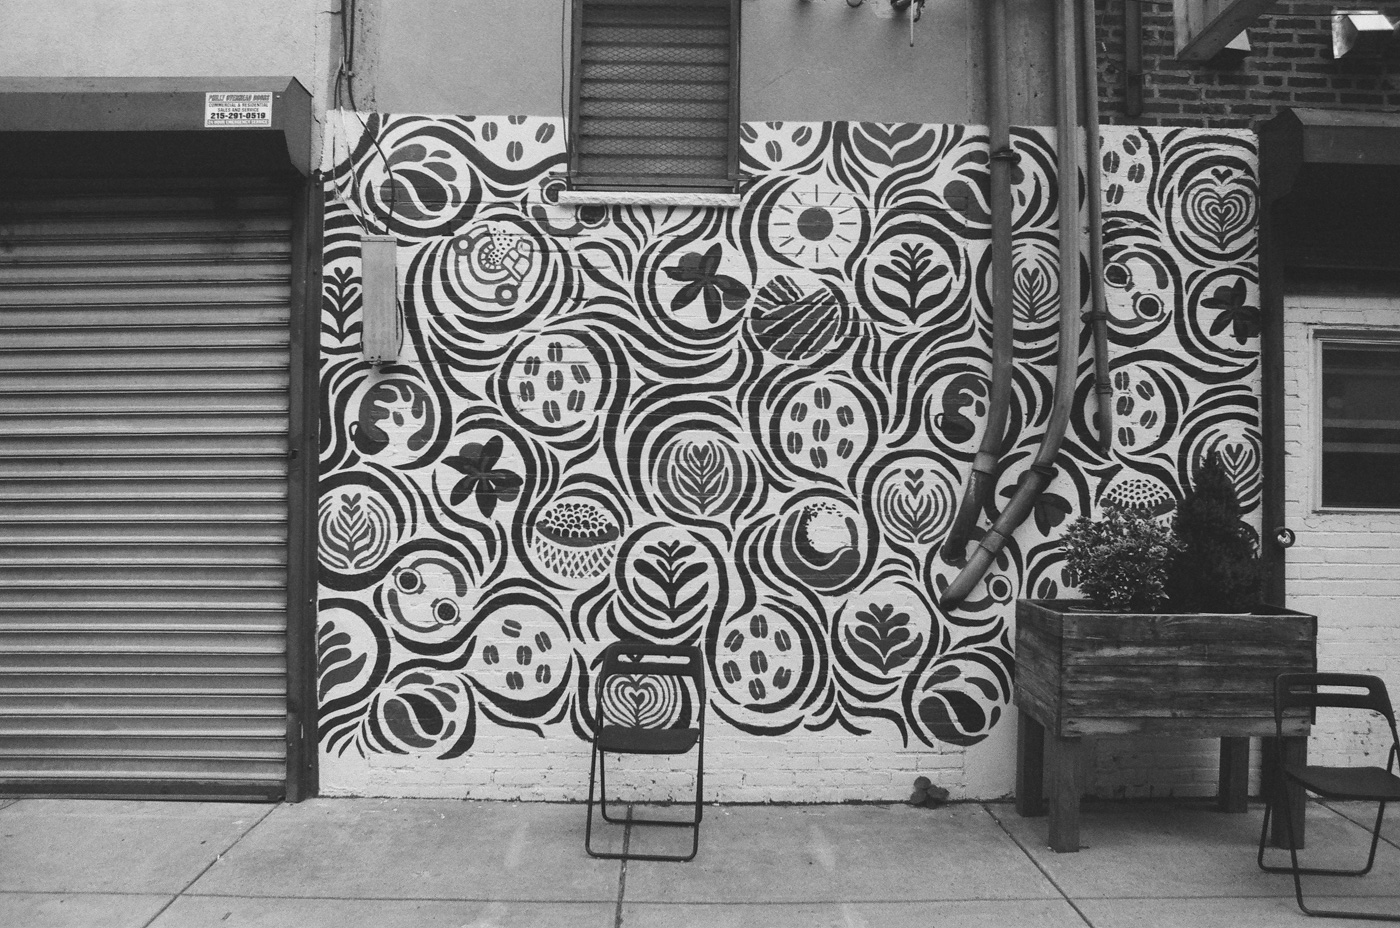 Mural and Chair